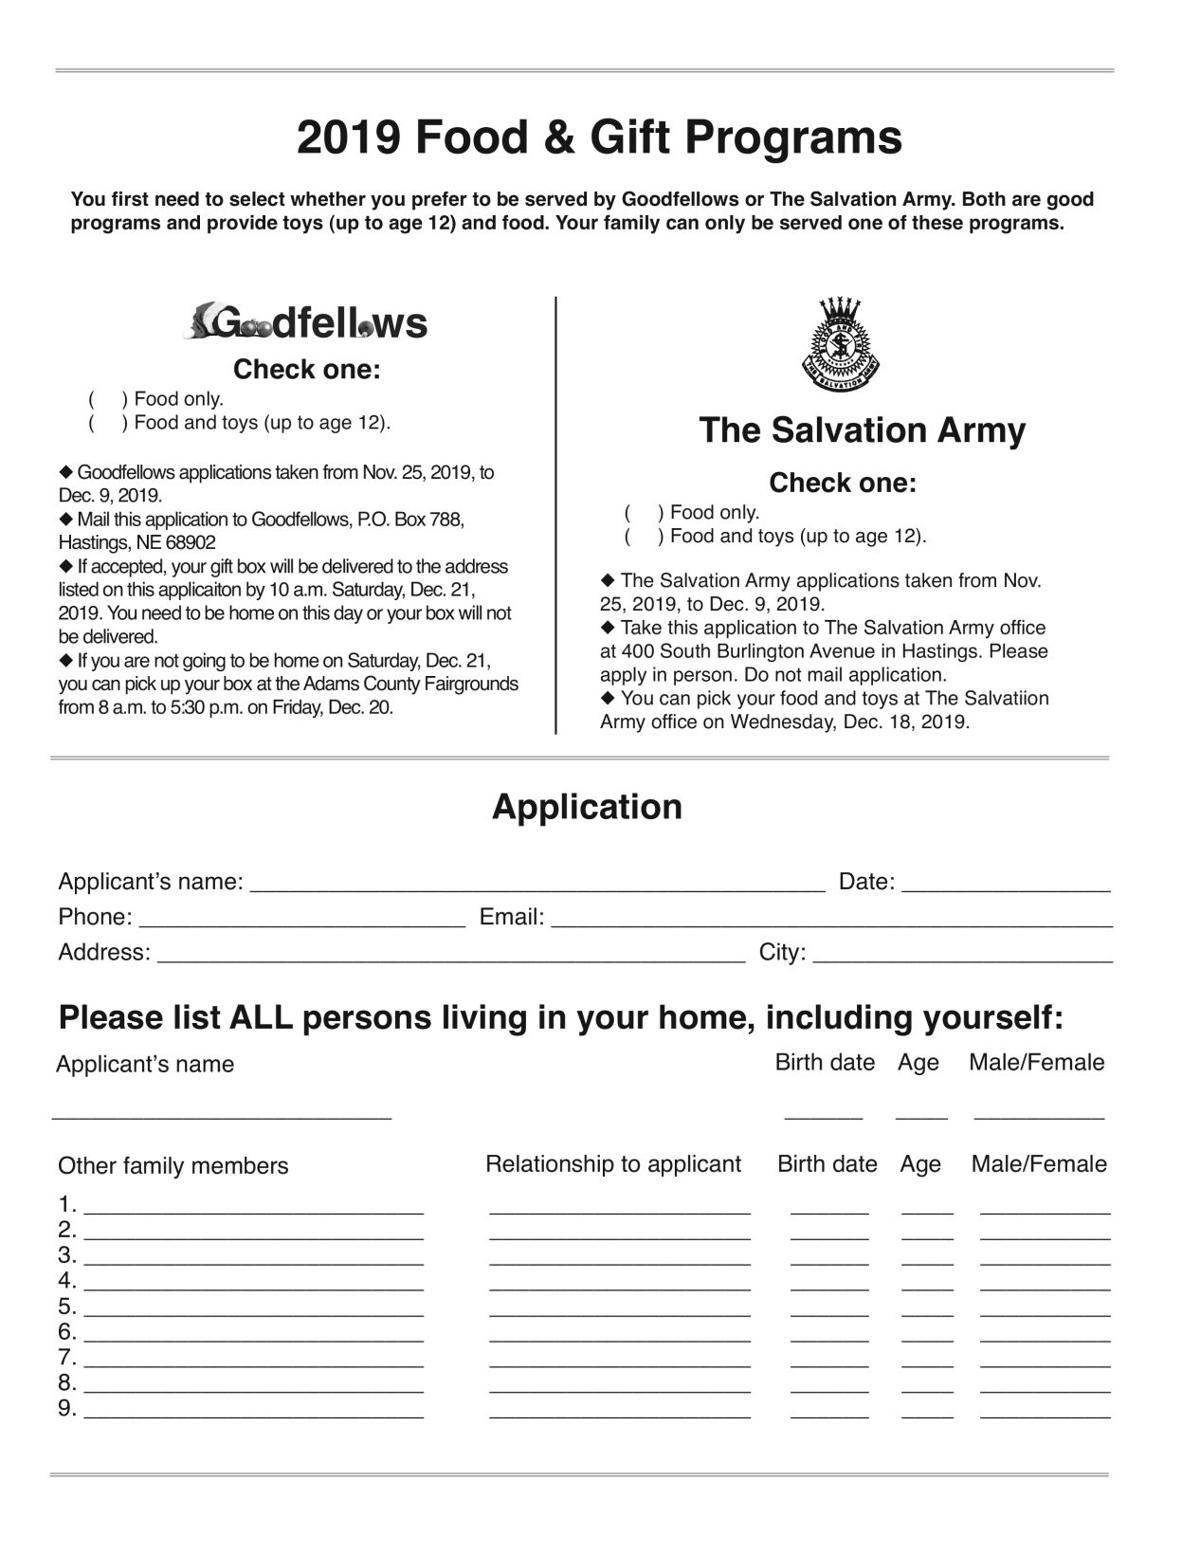 Goodfellows Application